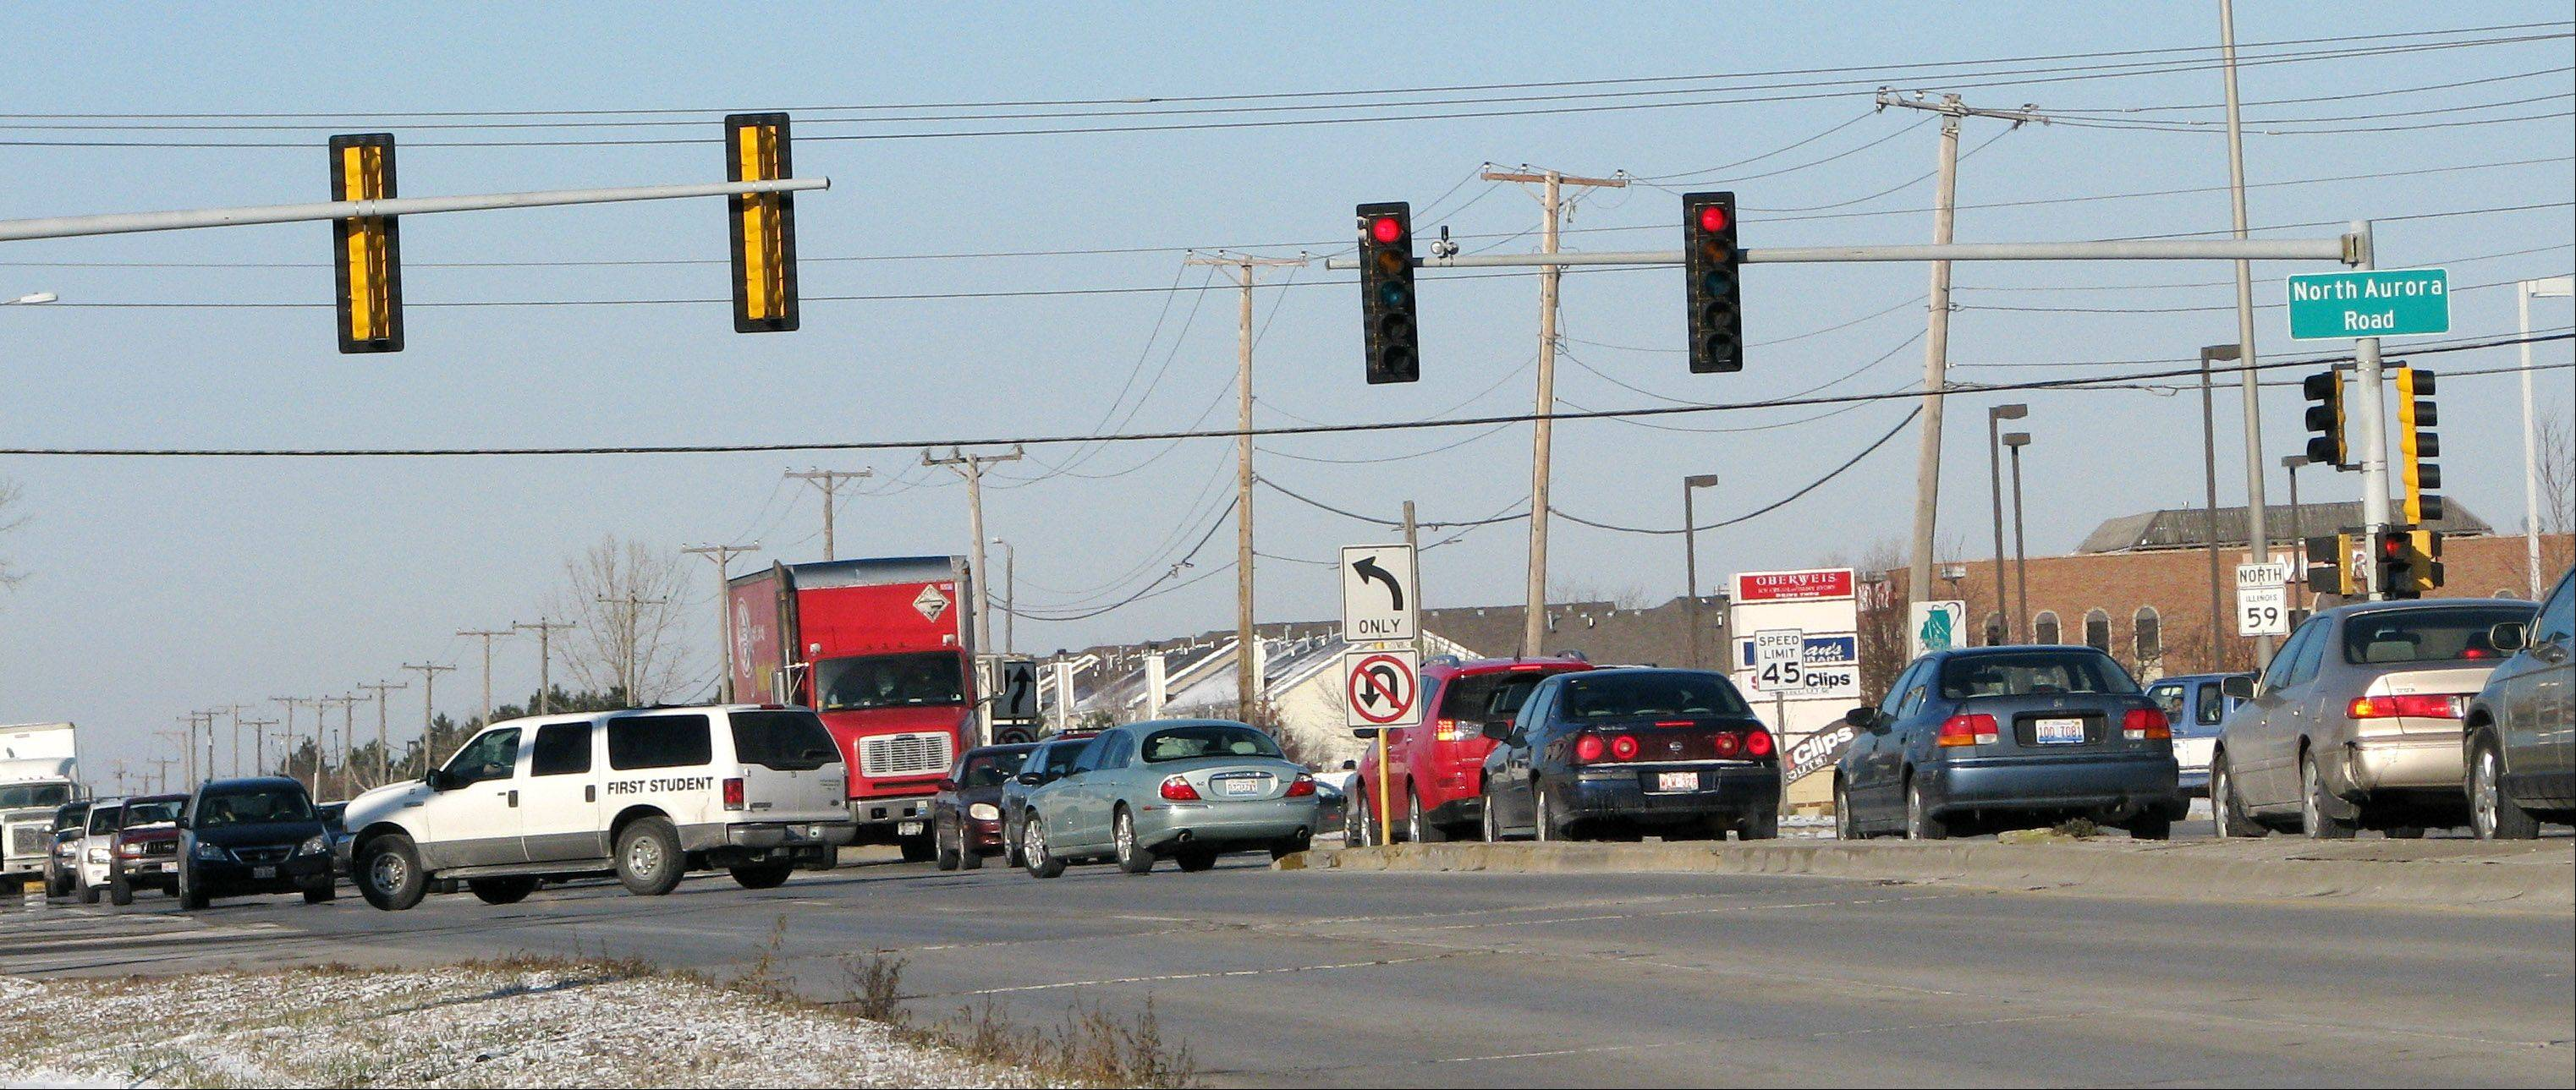 Red-light violations have decreased 65.1 percent at the intersection of North Aurora Road and Route 59 when comparing data from the three-month periods of February to April 2009 and January to March 2011.